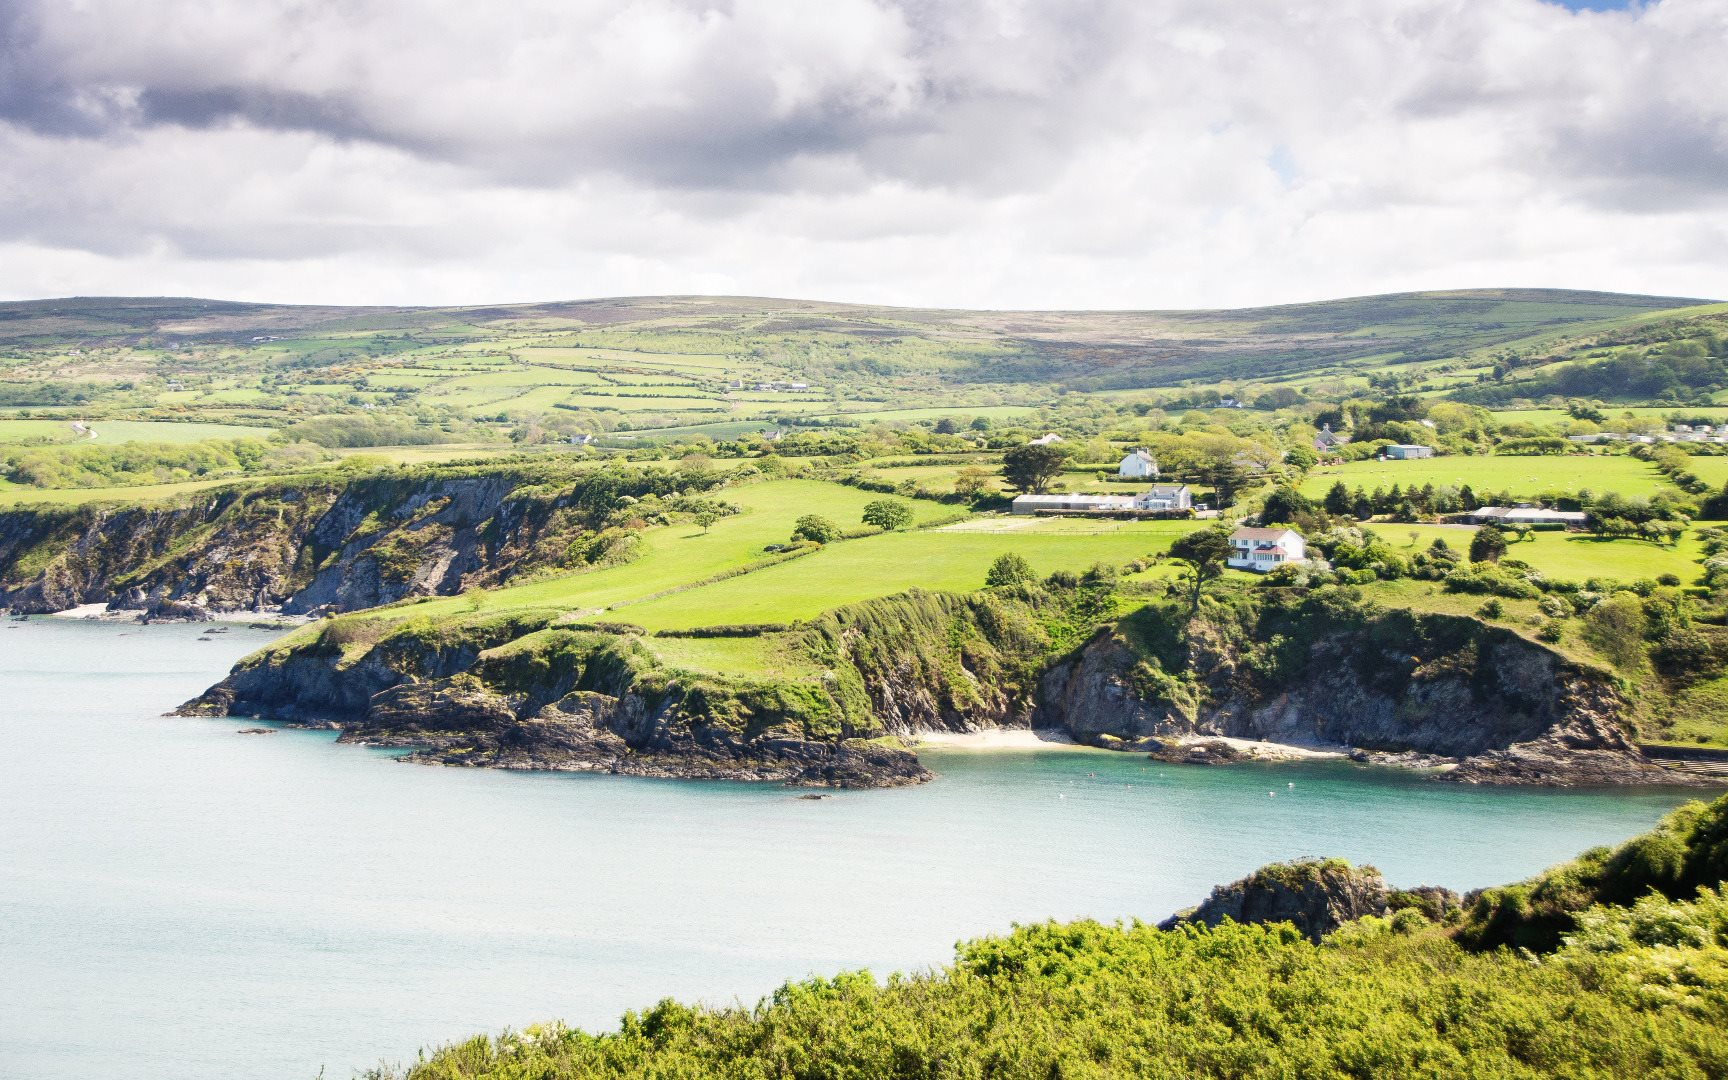 Landscape view of the coastline in Wales